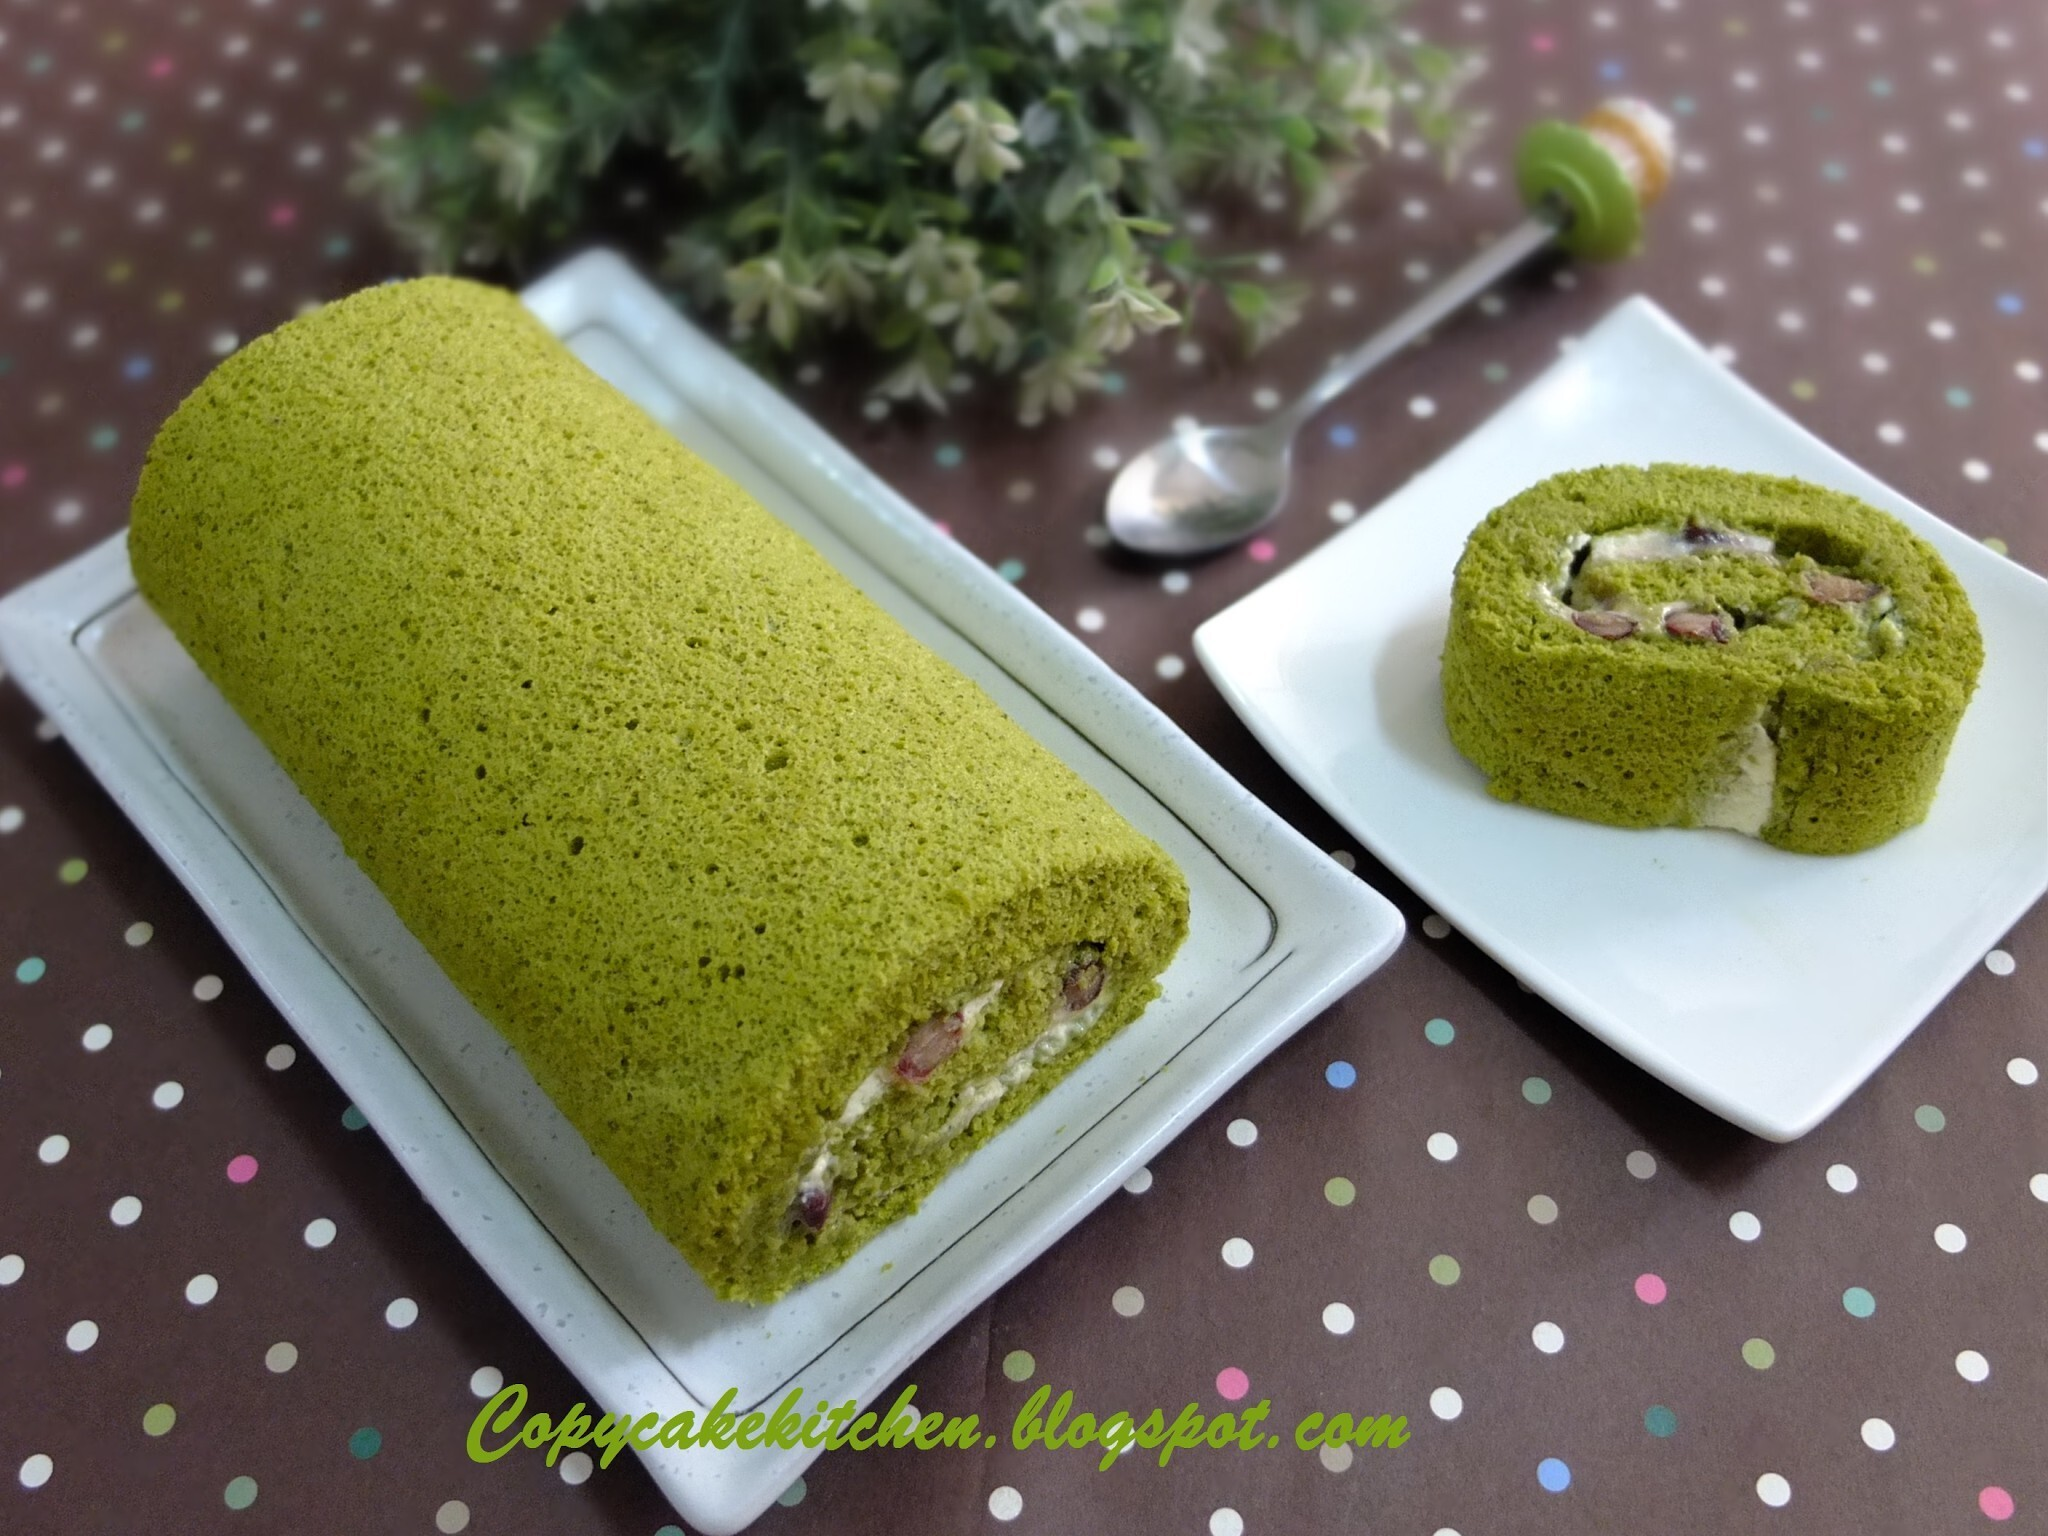 Green Tea Swiss Roll (綠茶蛋糕卷)AB #30: It's Tea Time!